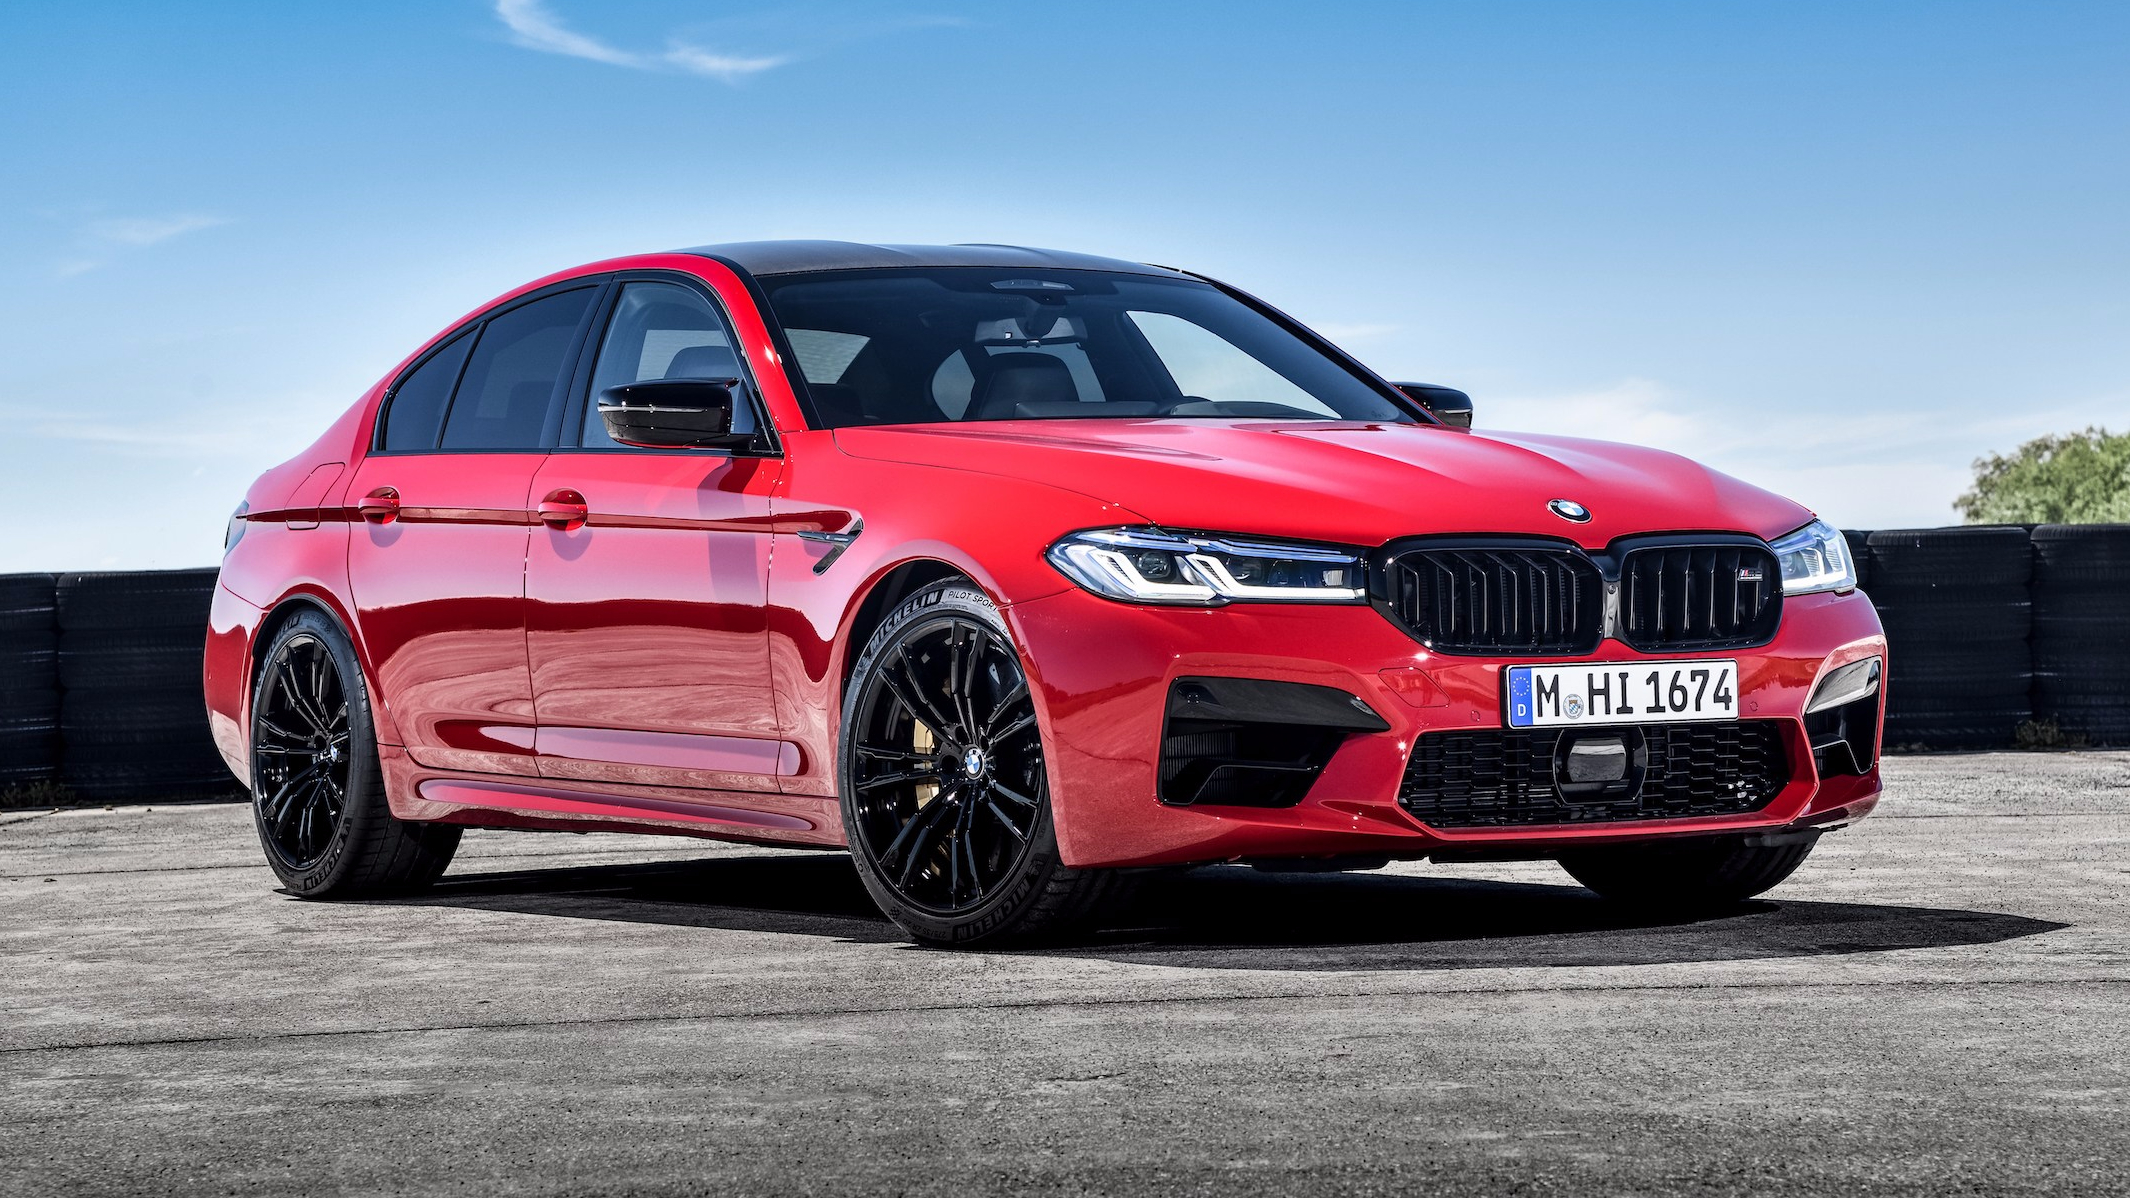 2021 Bmw M5 Facelift Revealed Redline